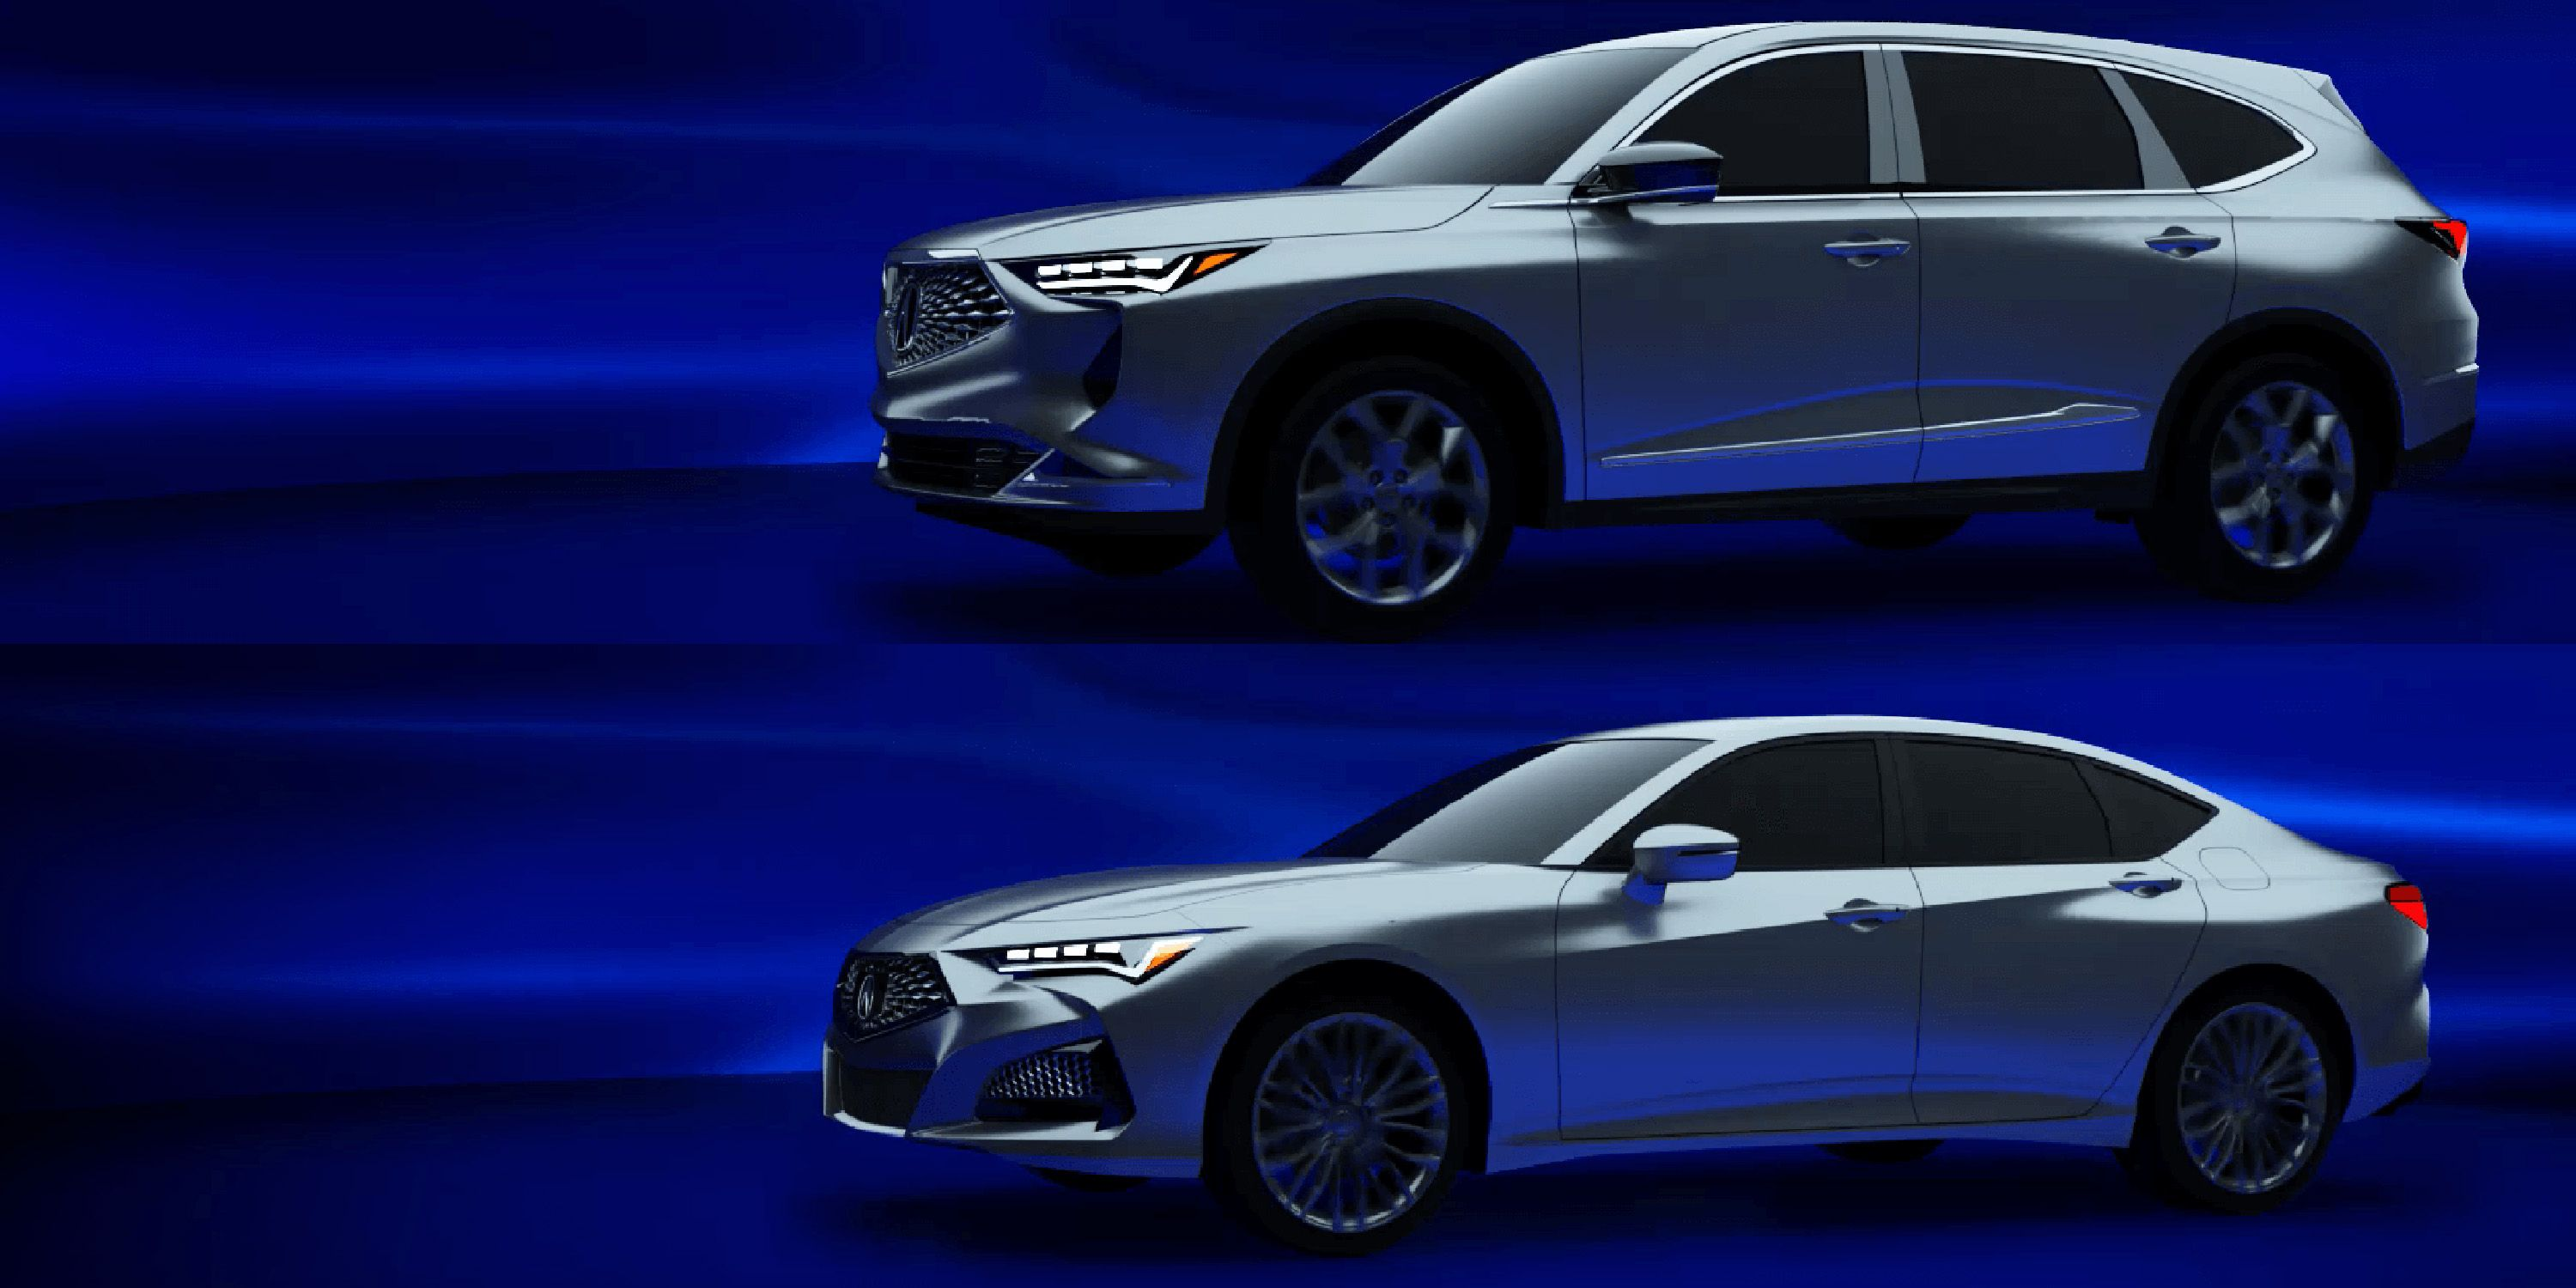 Photos Of The Next Gen Acura Mdx And Tlx Have Leaked In The Weirdest Way